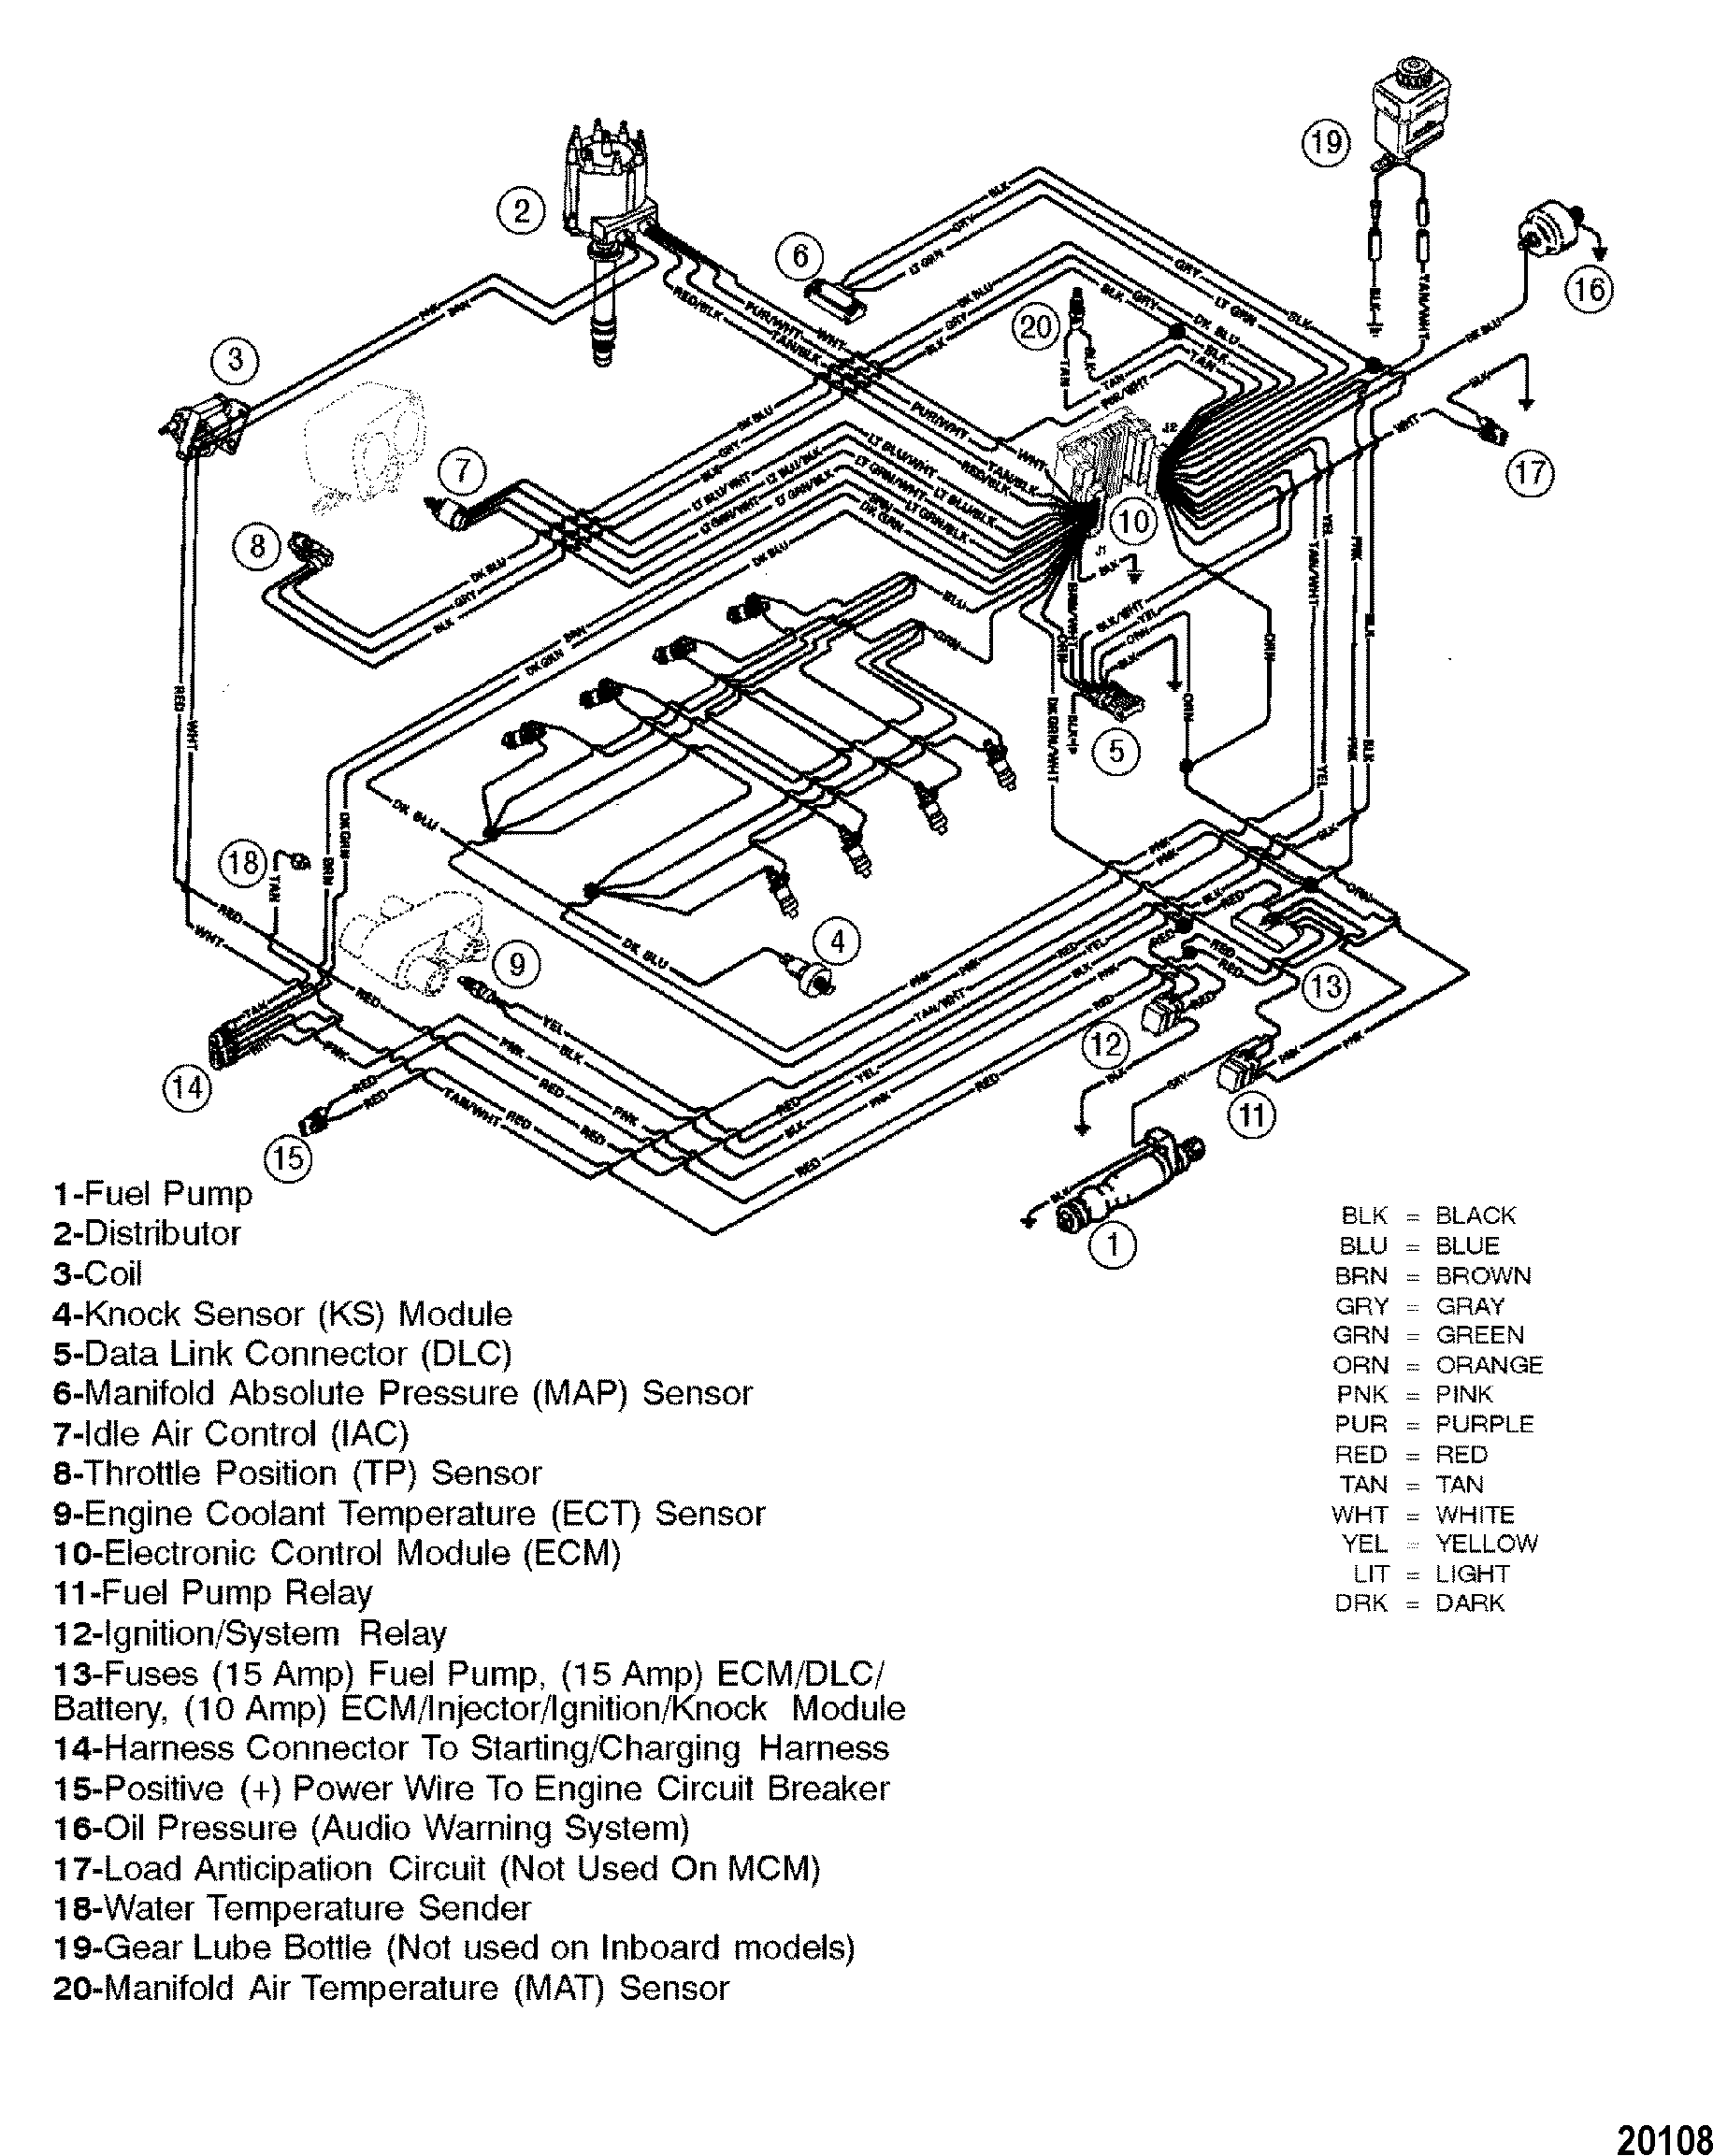 20108 mercruiser 5 7 wiring diagram 5 7 engine diagram \u2022 wiring diagrams mercruiser thunderbolt 4 wiring diagram at crackthecode.co